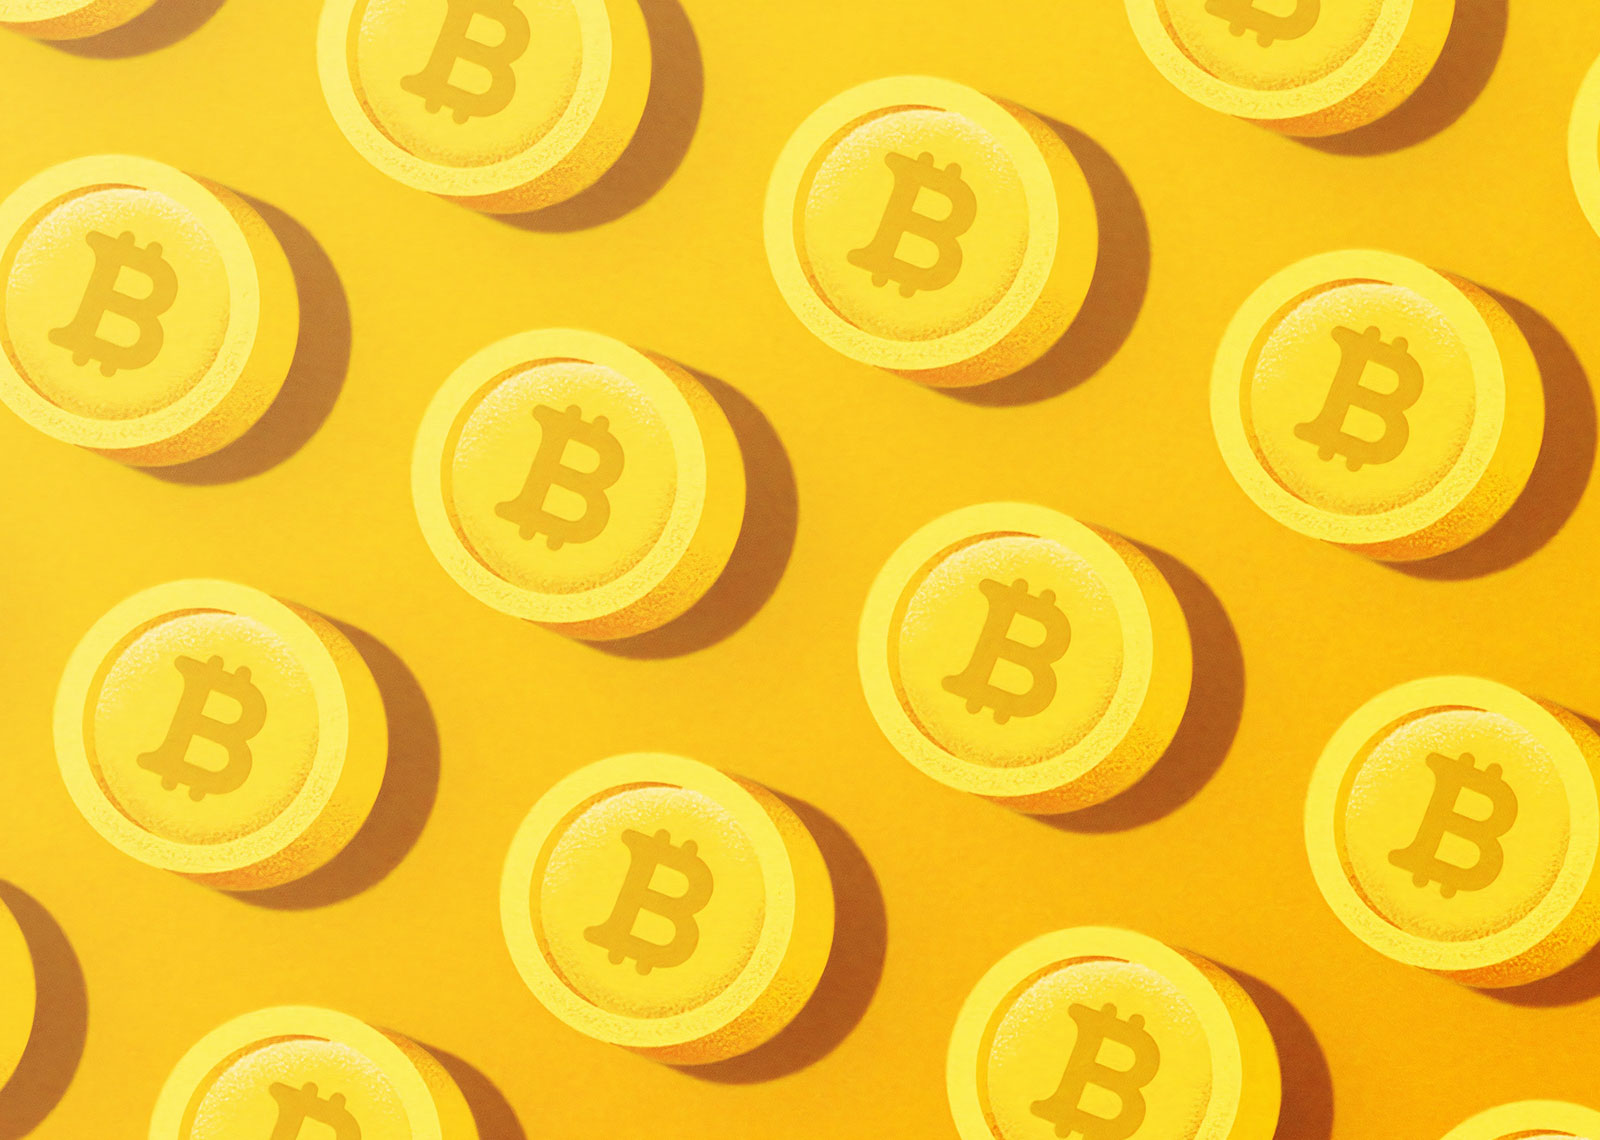 The most common mistakes people make with cryptocurrency